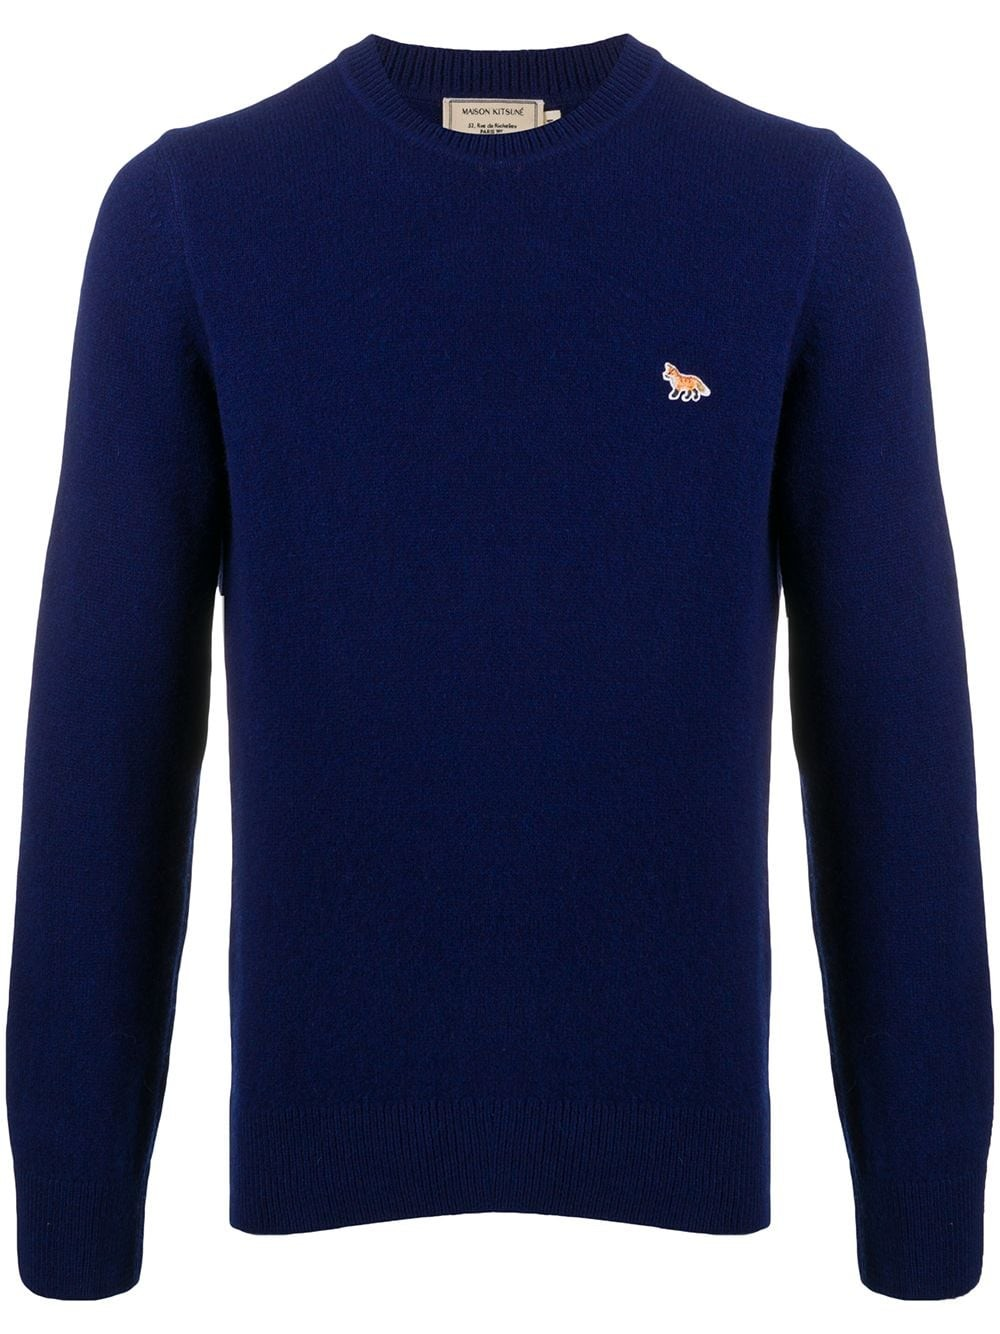 LAMBSWOOL R-NECK PULLOVER PROFIL